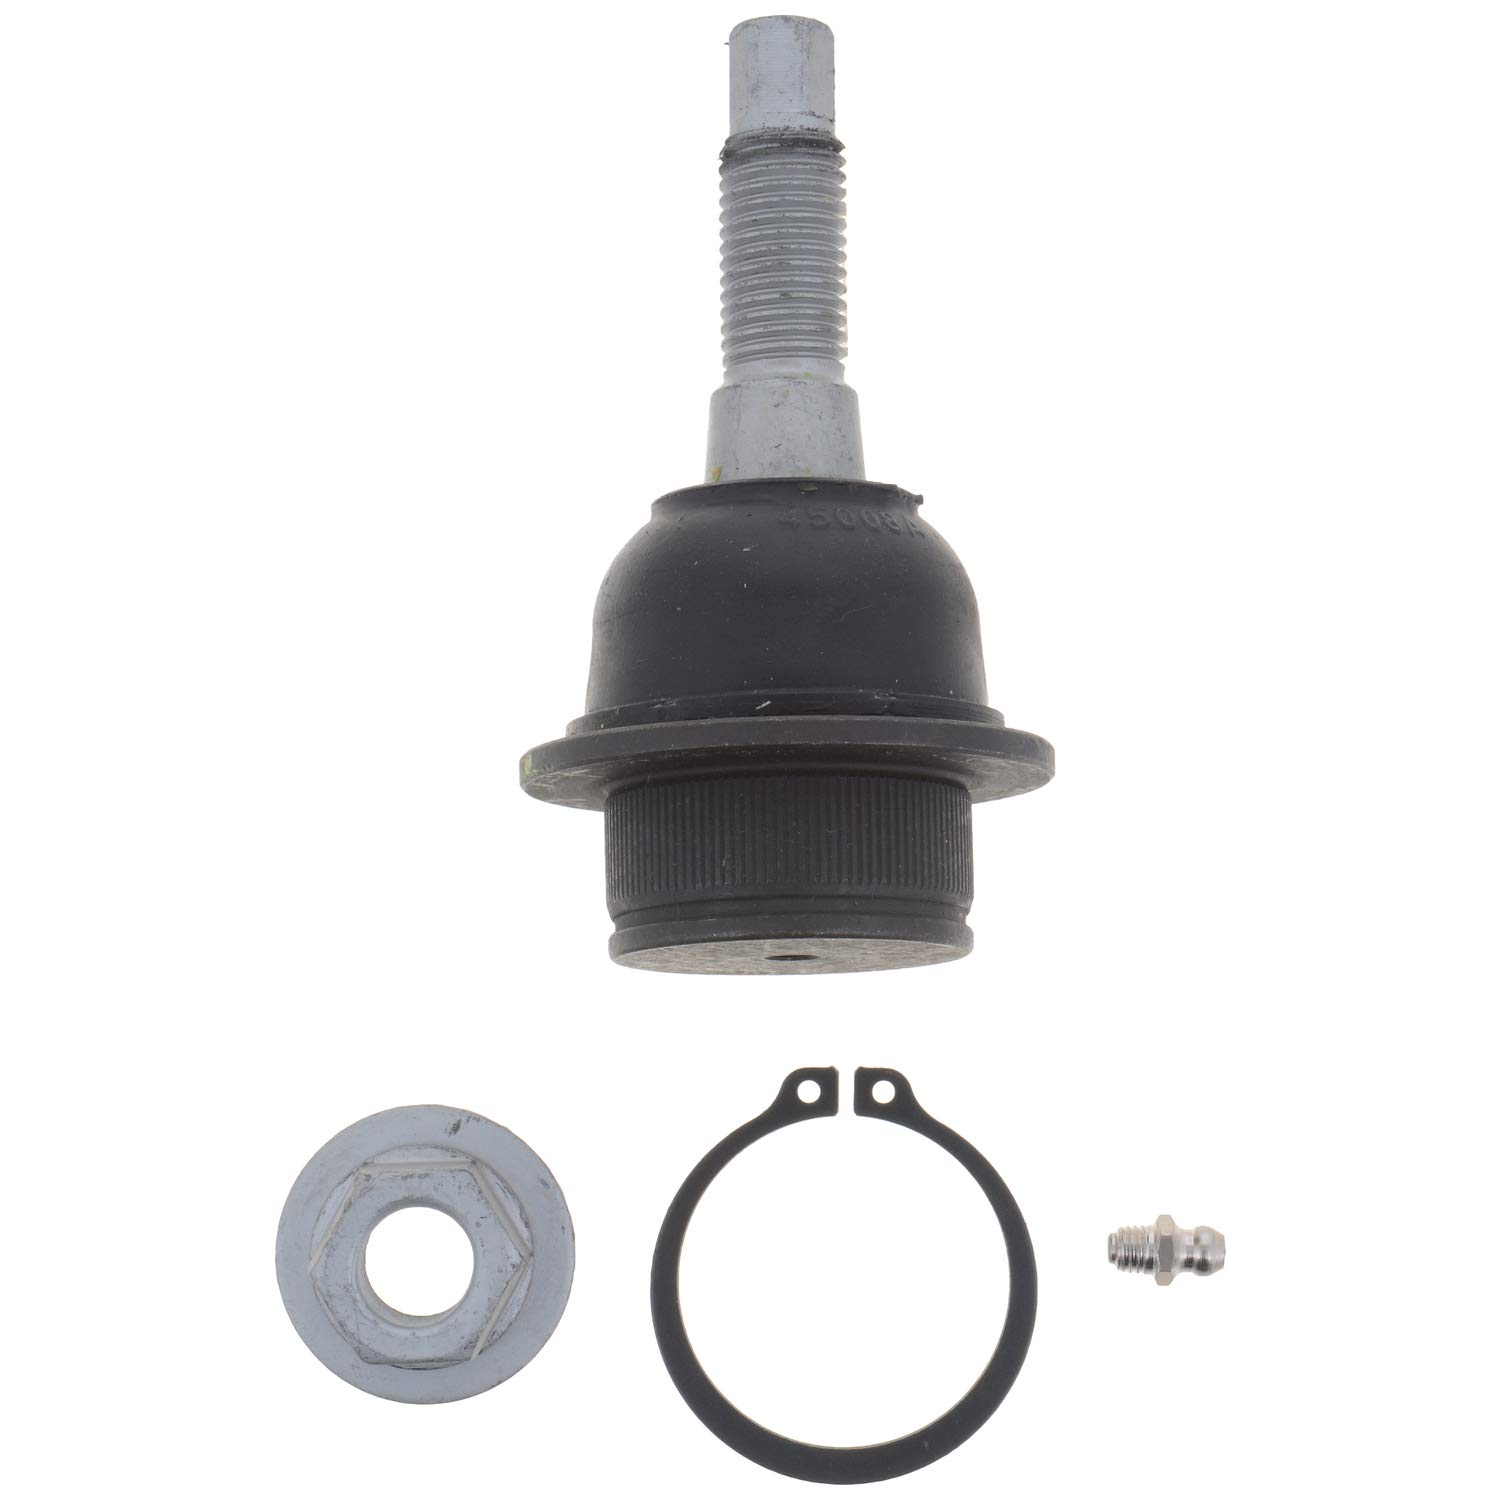 TRW Automotive JBJ489 Ball Joint